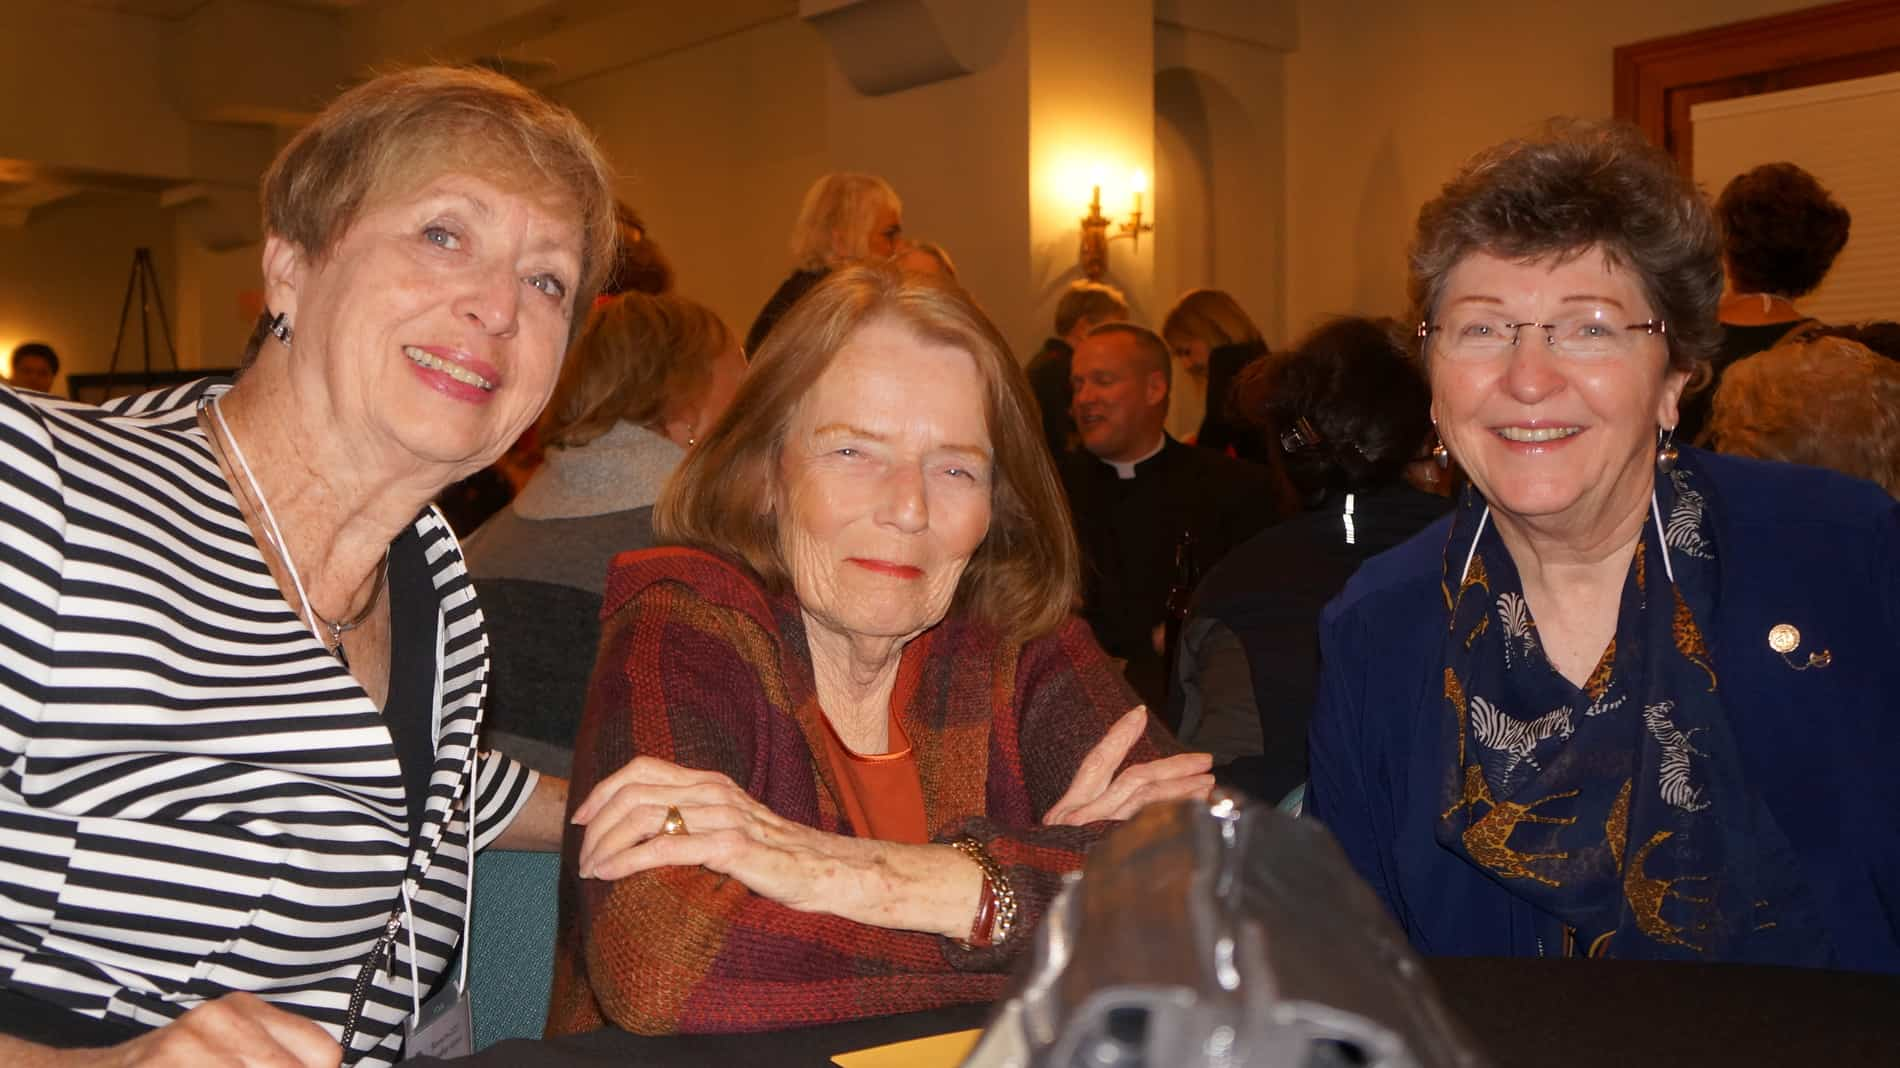 Jean, Mary Ann and Kirsten